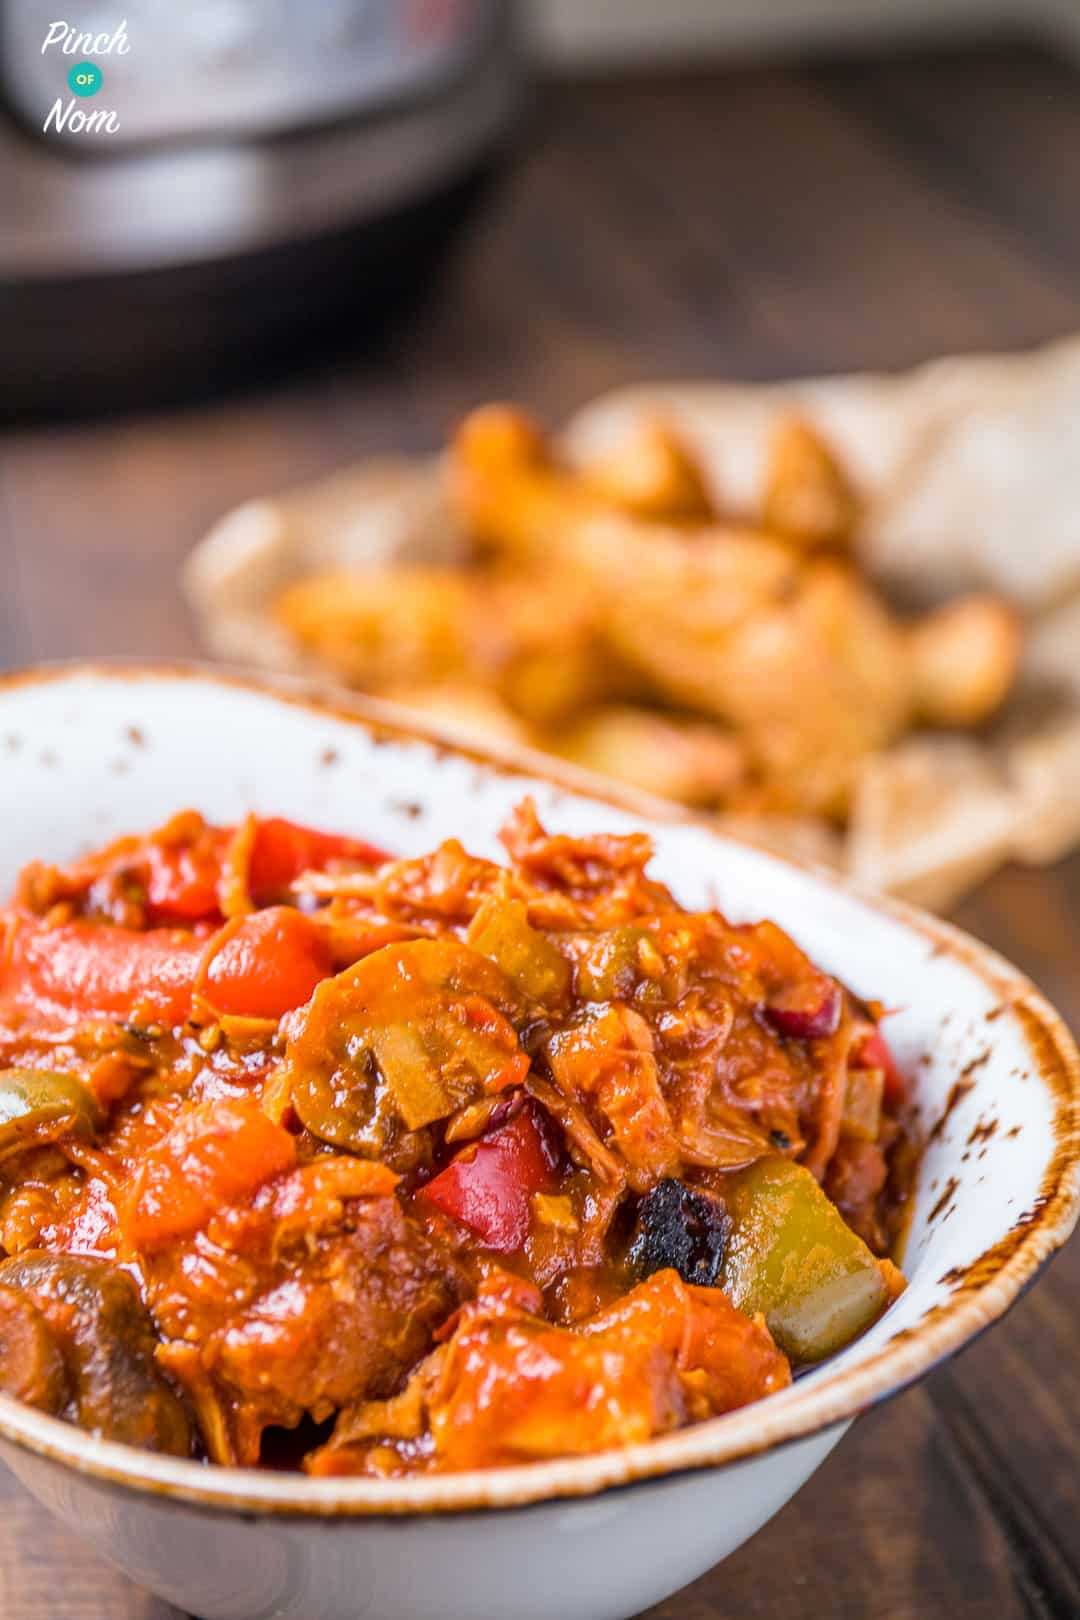 Campfire Stew | Slimming & Weight Watchers Friendly Recipes - Pinch of Nom